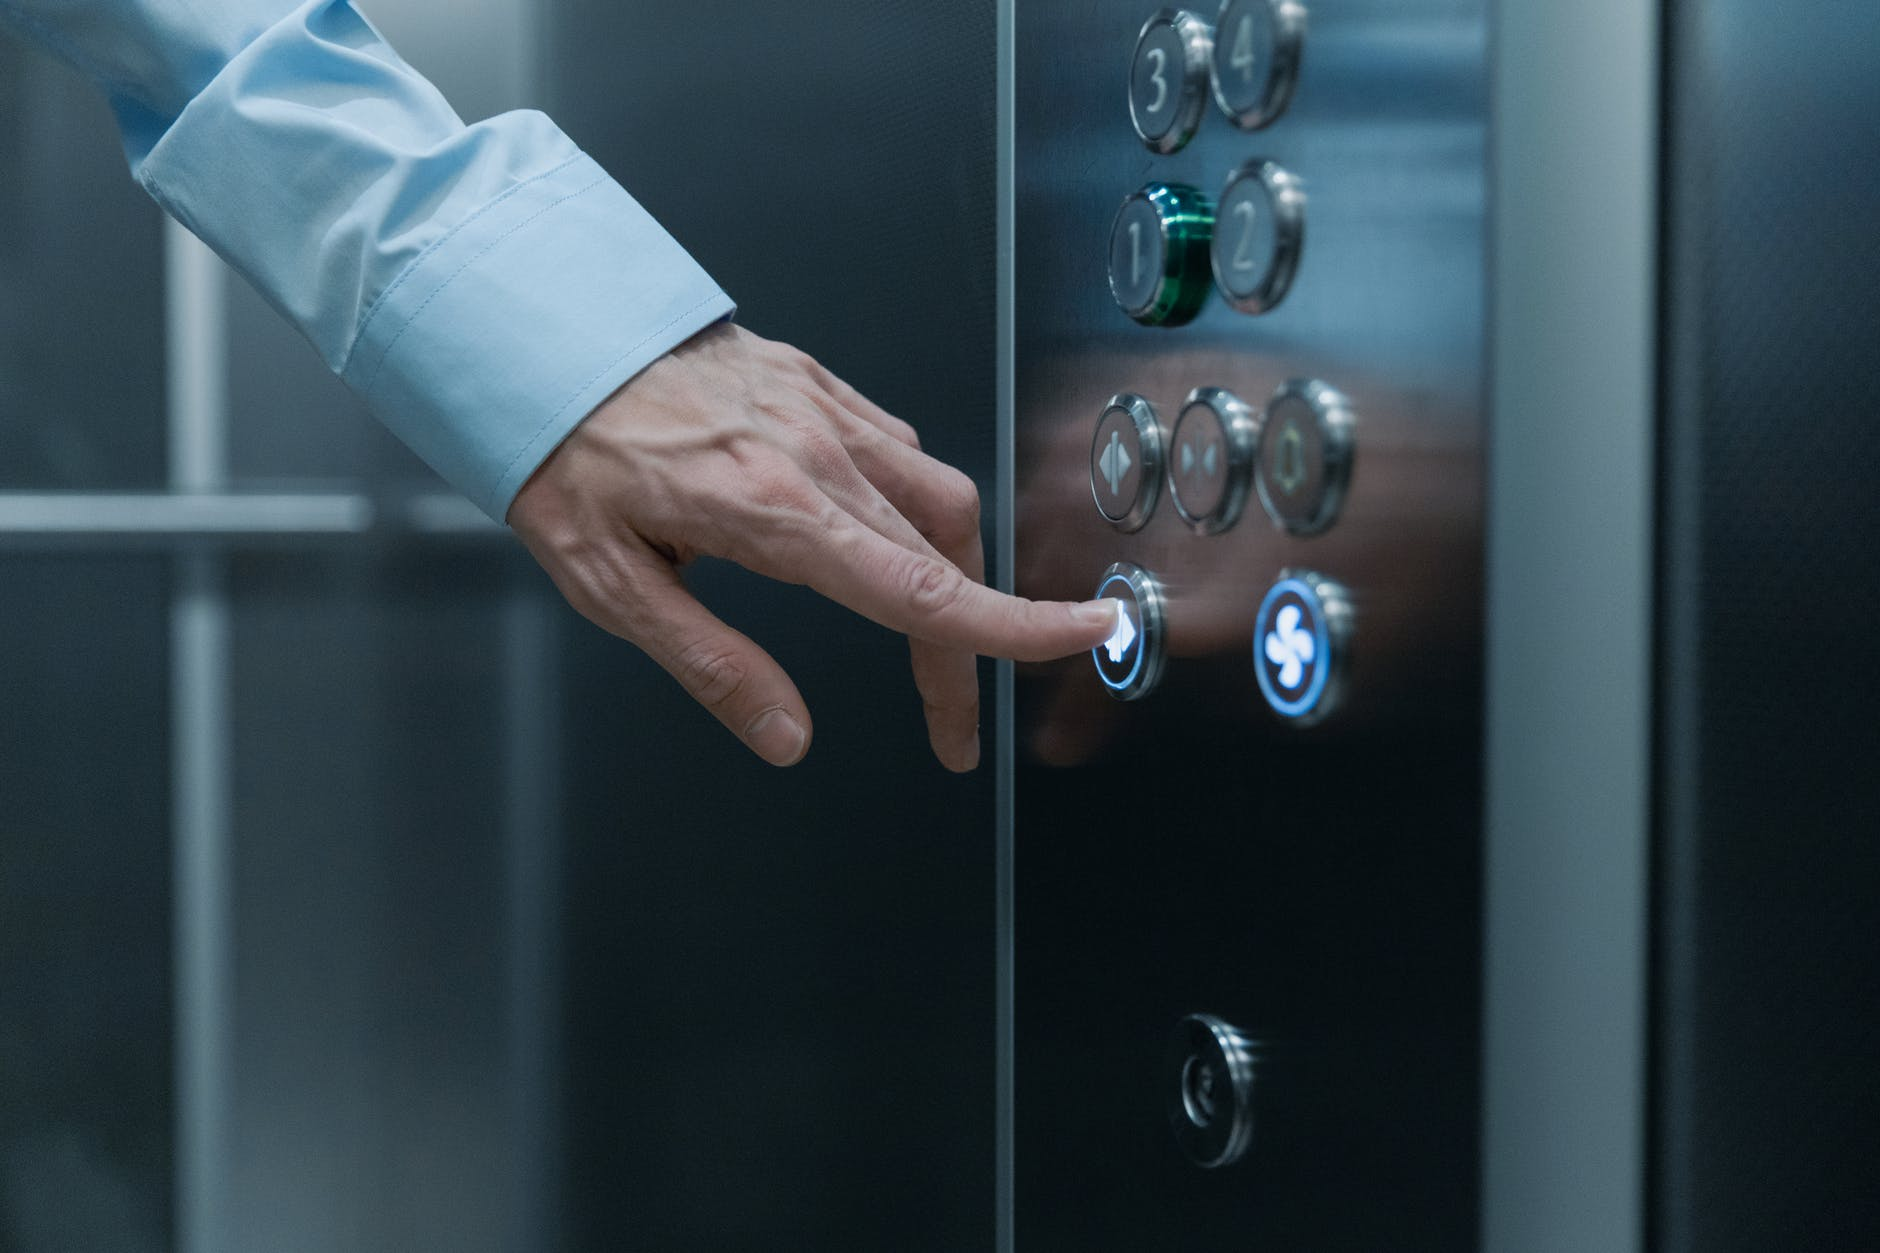 close up shot of a hand pressing an elevator button